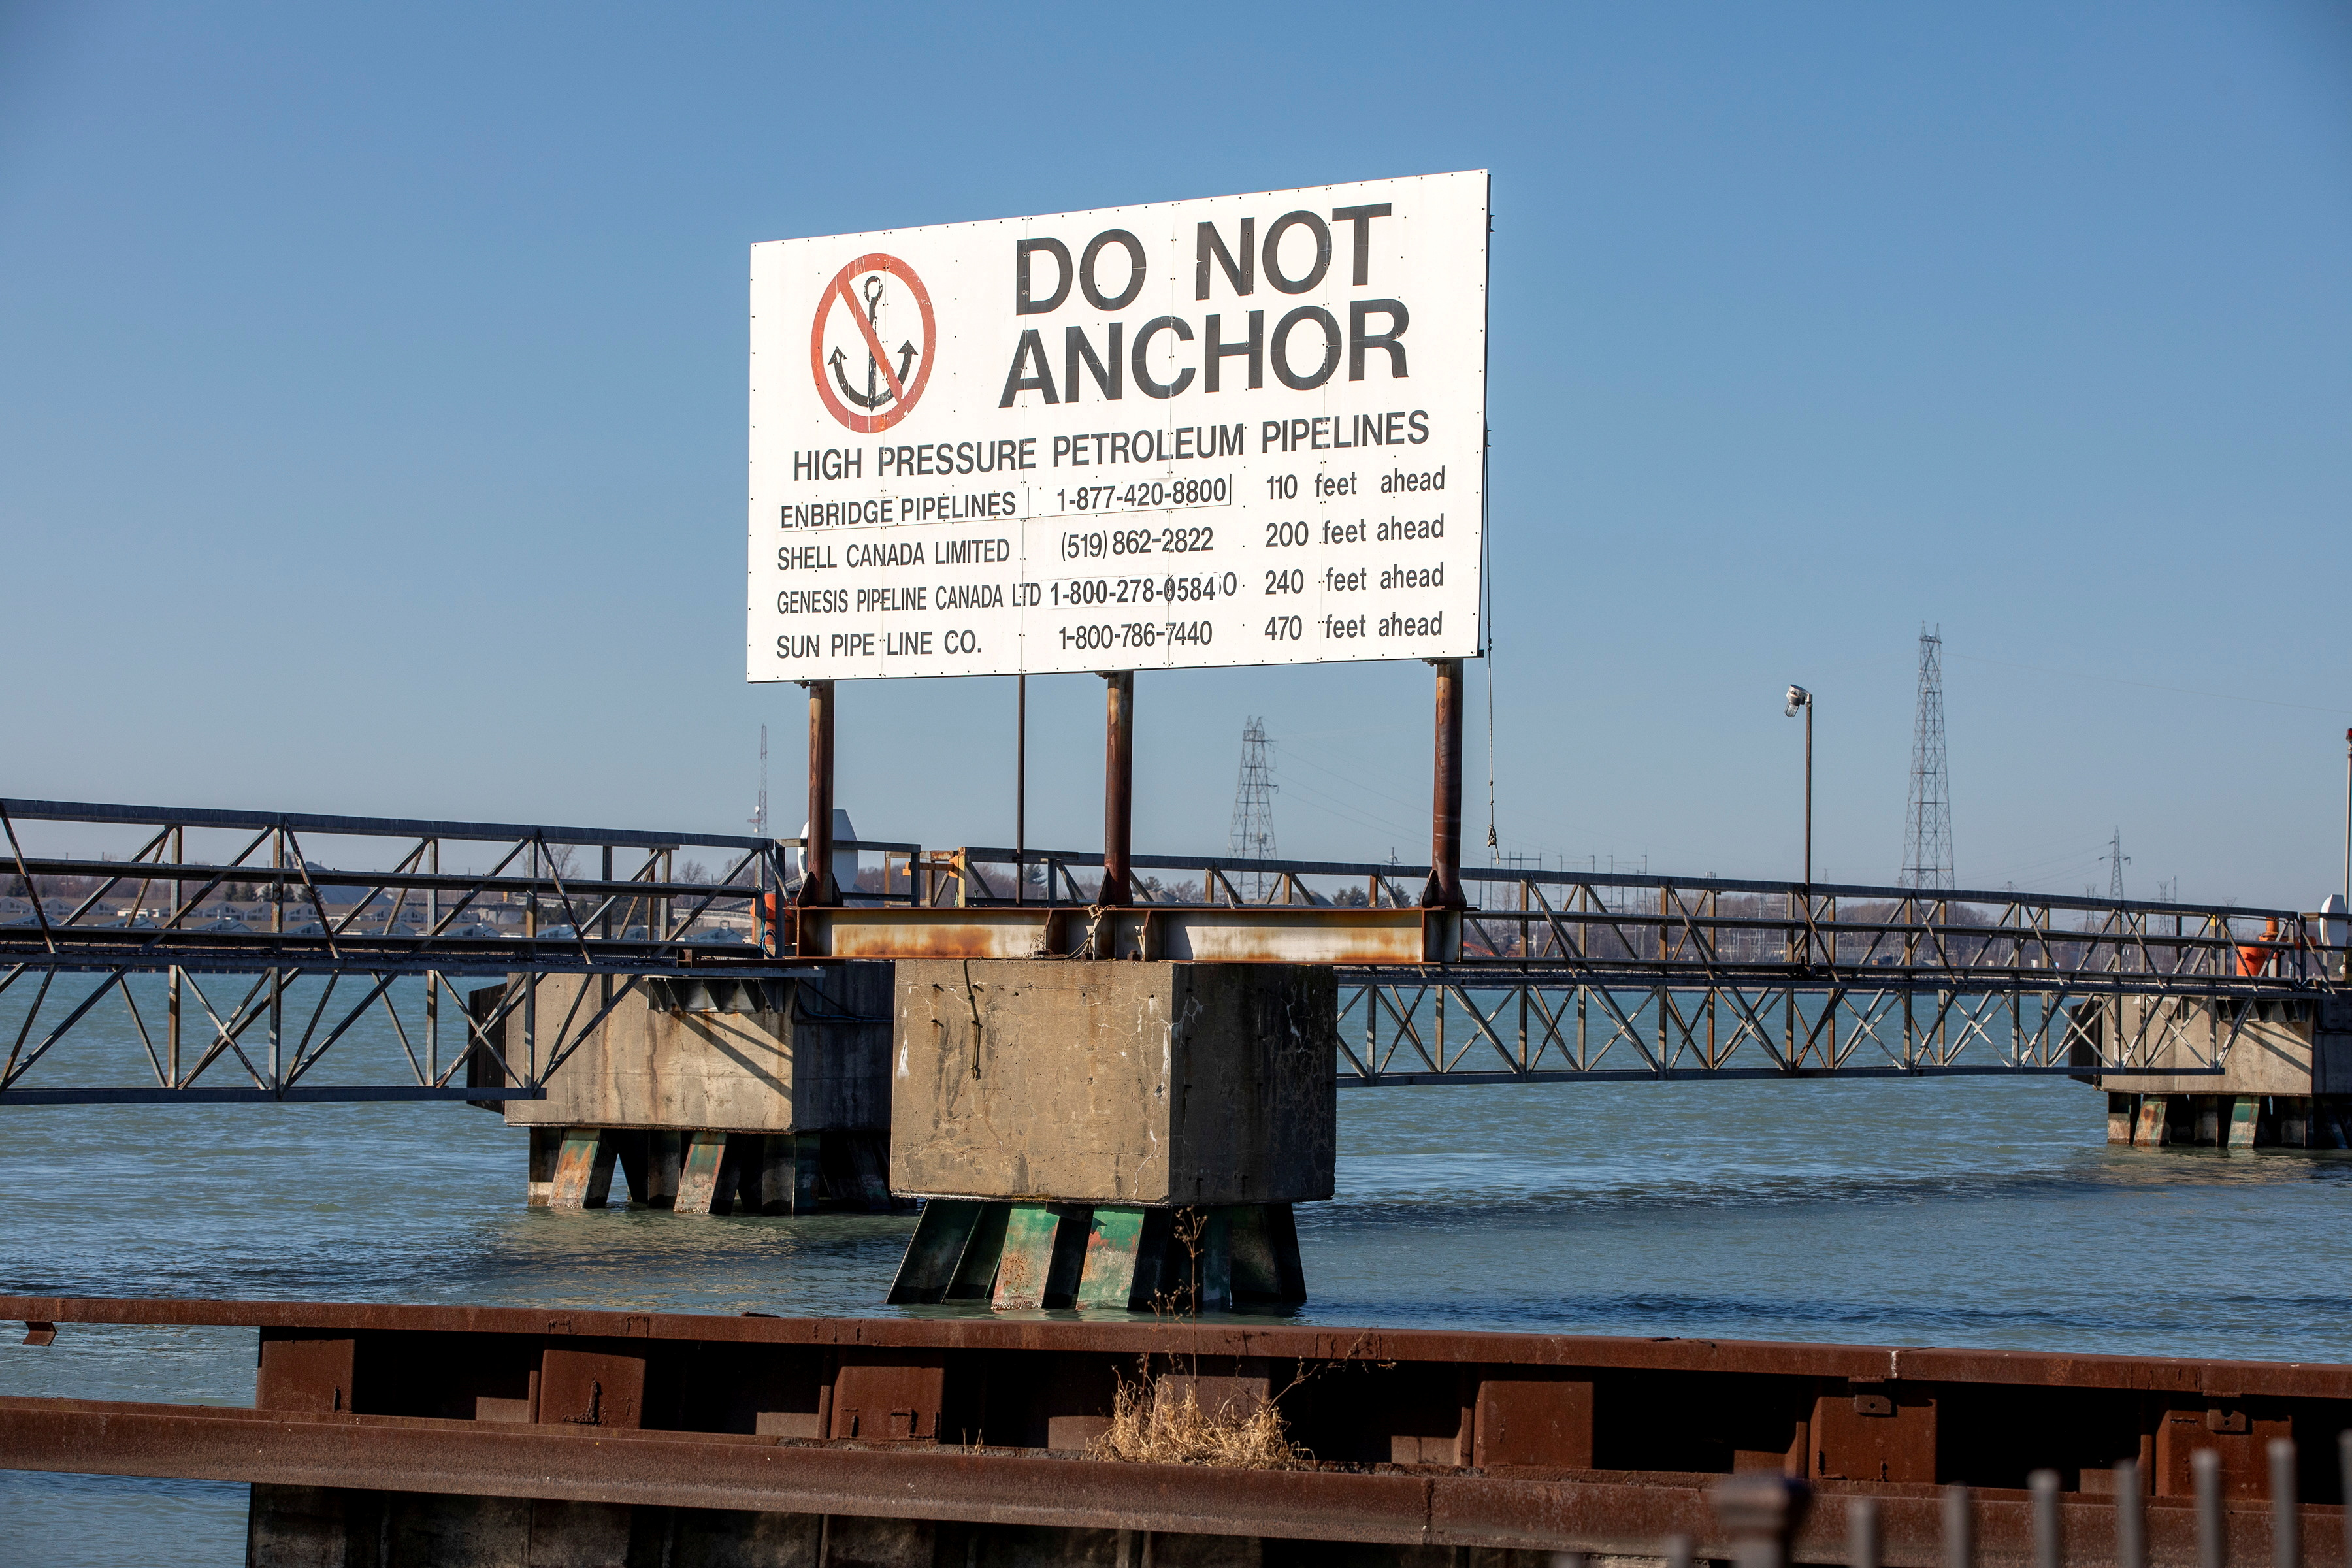 A signpost marks the presence of high pressure petroleum pipelines including Enbridge's Line 5 pipeline, which Michigan Governor Gretchen Whitmer ordered shut down in May 2021, in Sarnia, Ontario, Canada March 20, 2021. Picture taken March 20, 2021. REUTERS/Carlos Osorio/File Photo